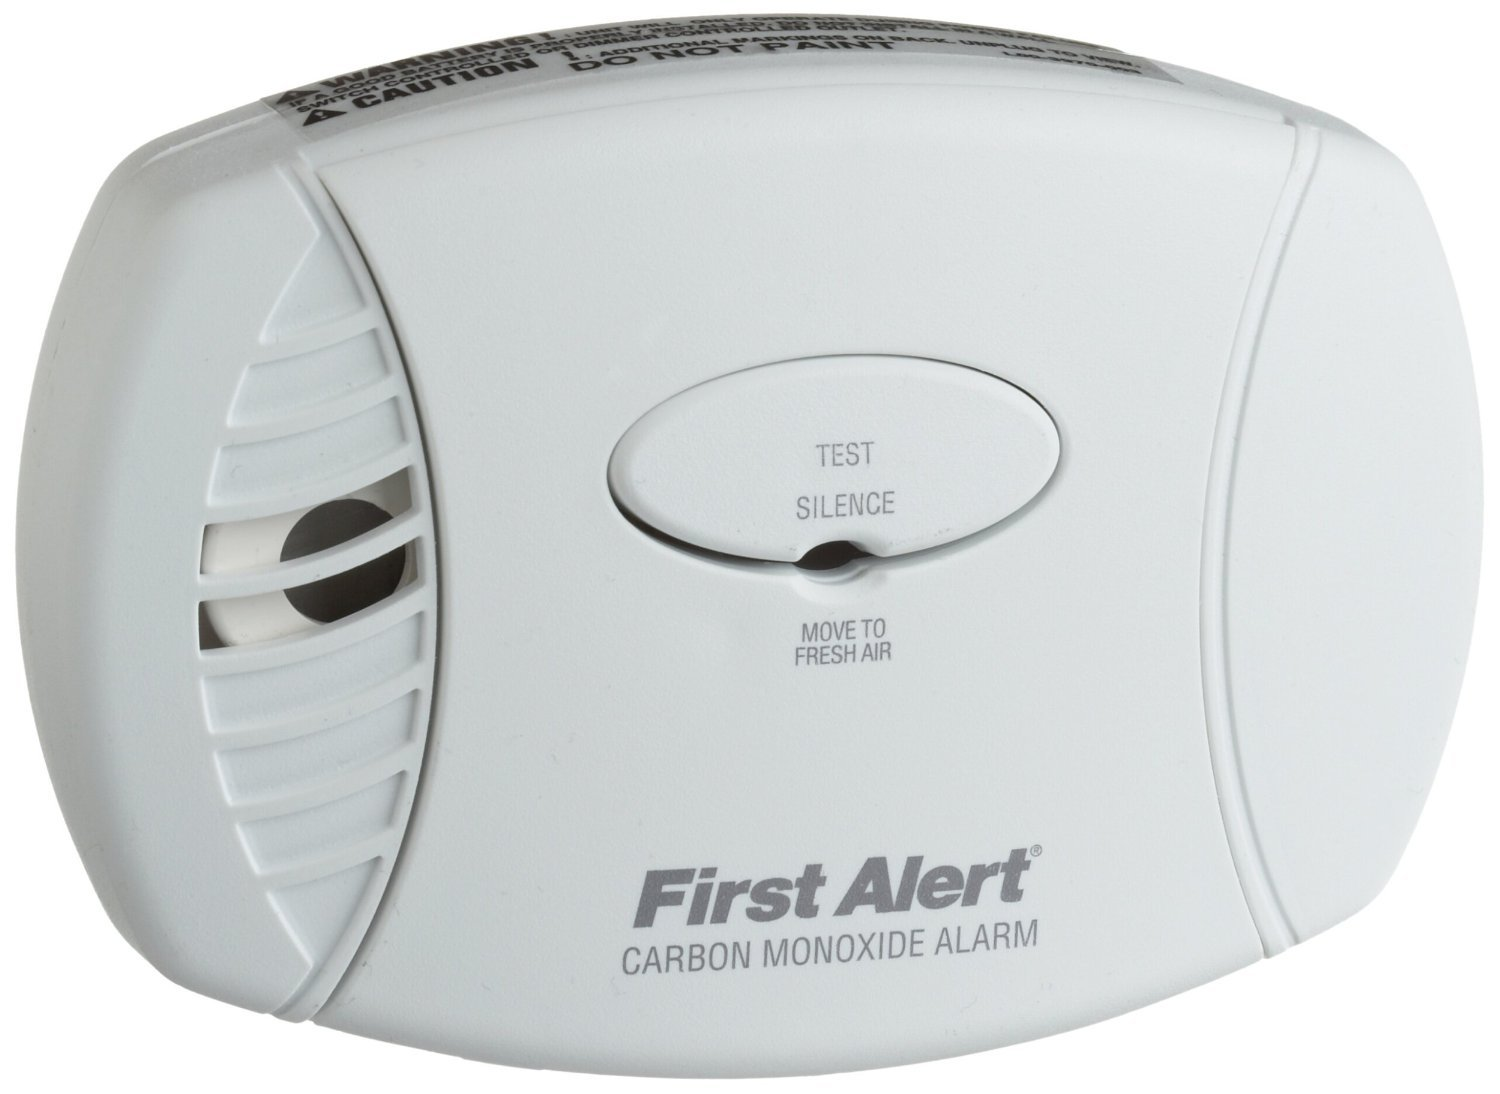 Carbon Monoxide Detectors Carbon Monoxide Alarm With Lcd Display Security & Protection Dependable Co Sensor Carbon Monoxide Poisioning Detector